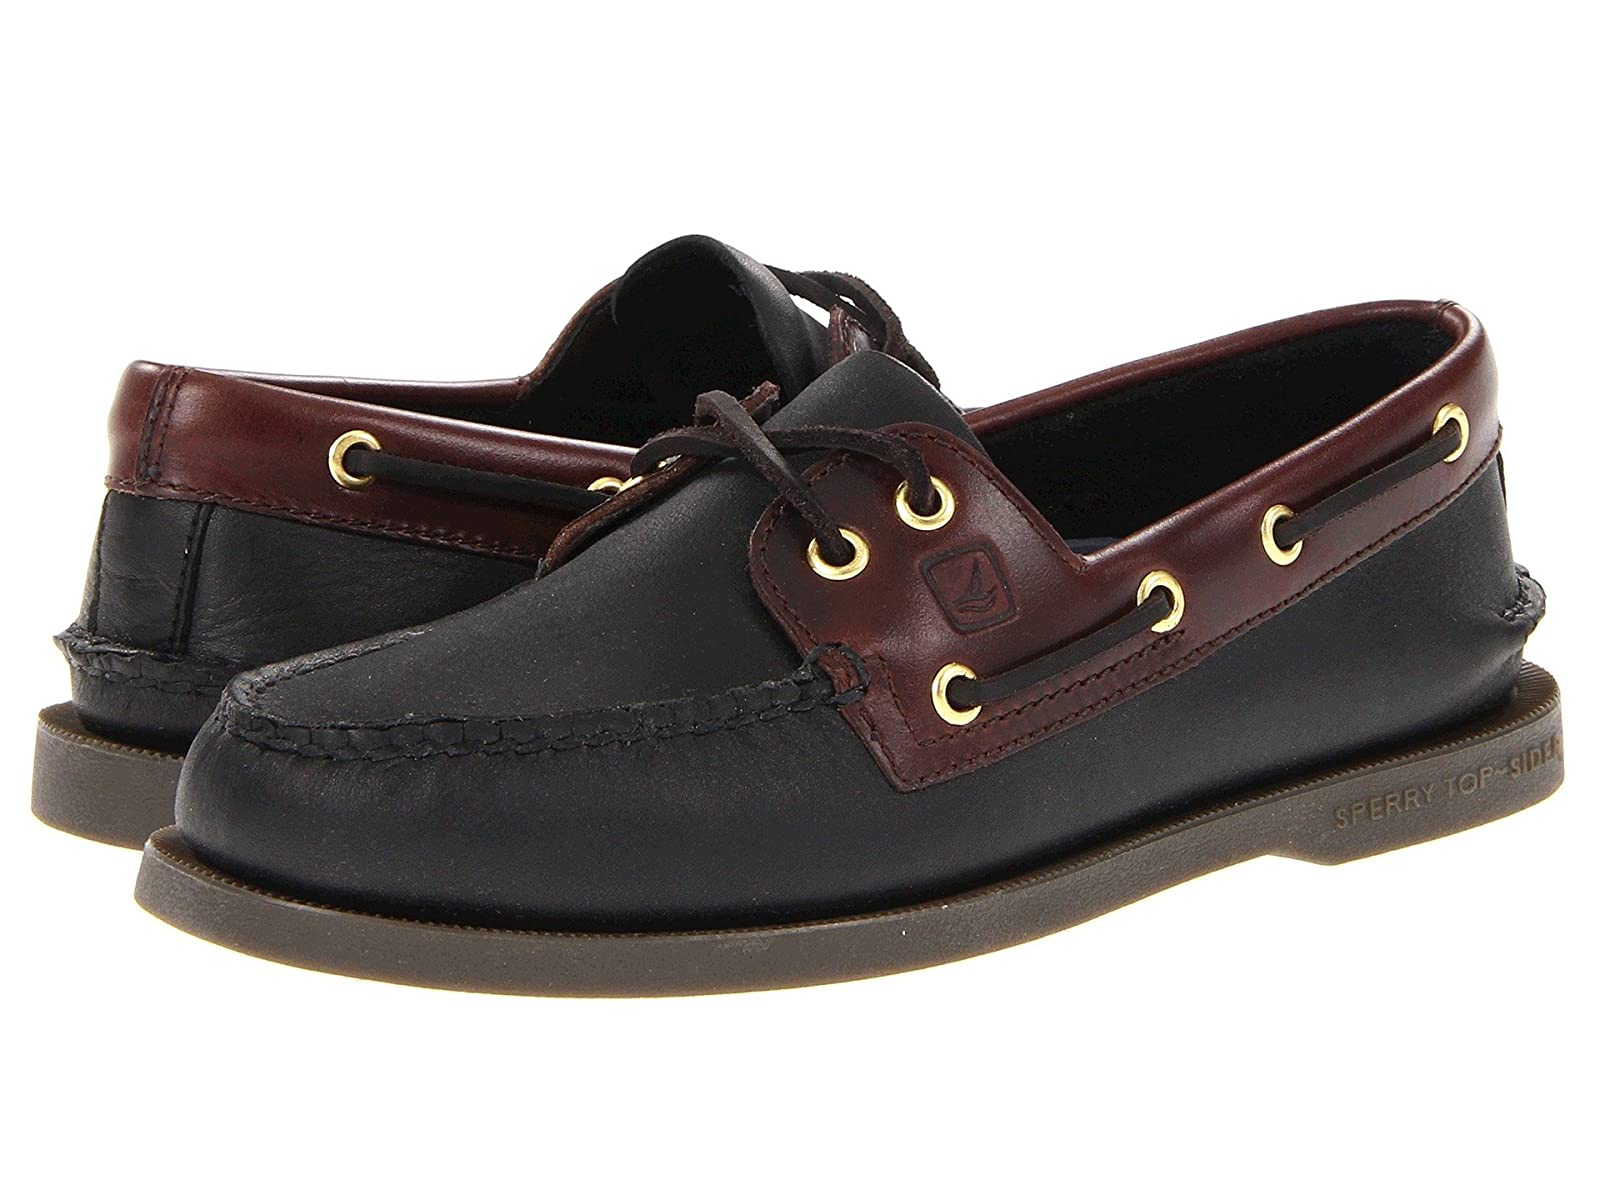 Sperry Authentic OriginalSelling fashionable and eye-catching shoes